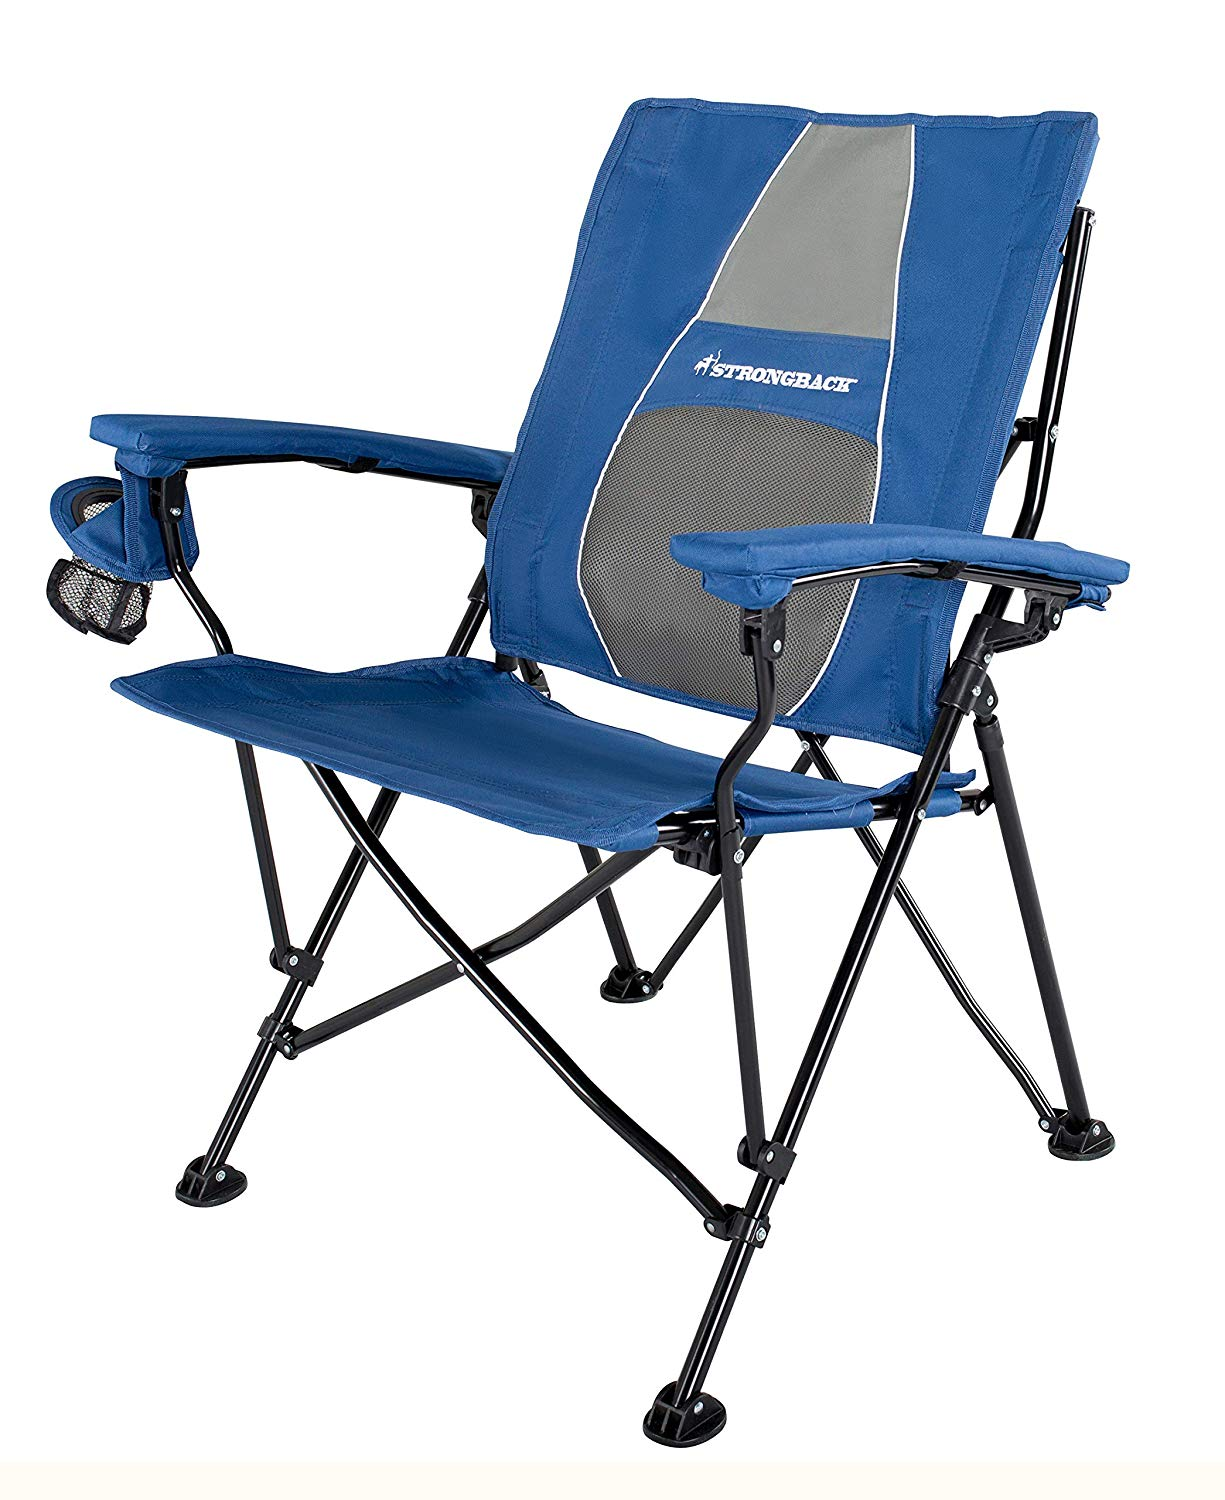 Top 10 Best Camping Chair For Bad Back 2021 Reviews 6